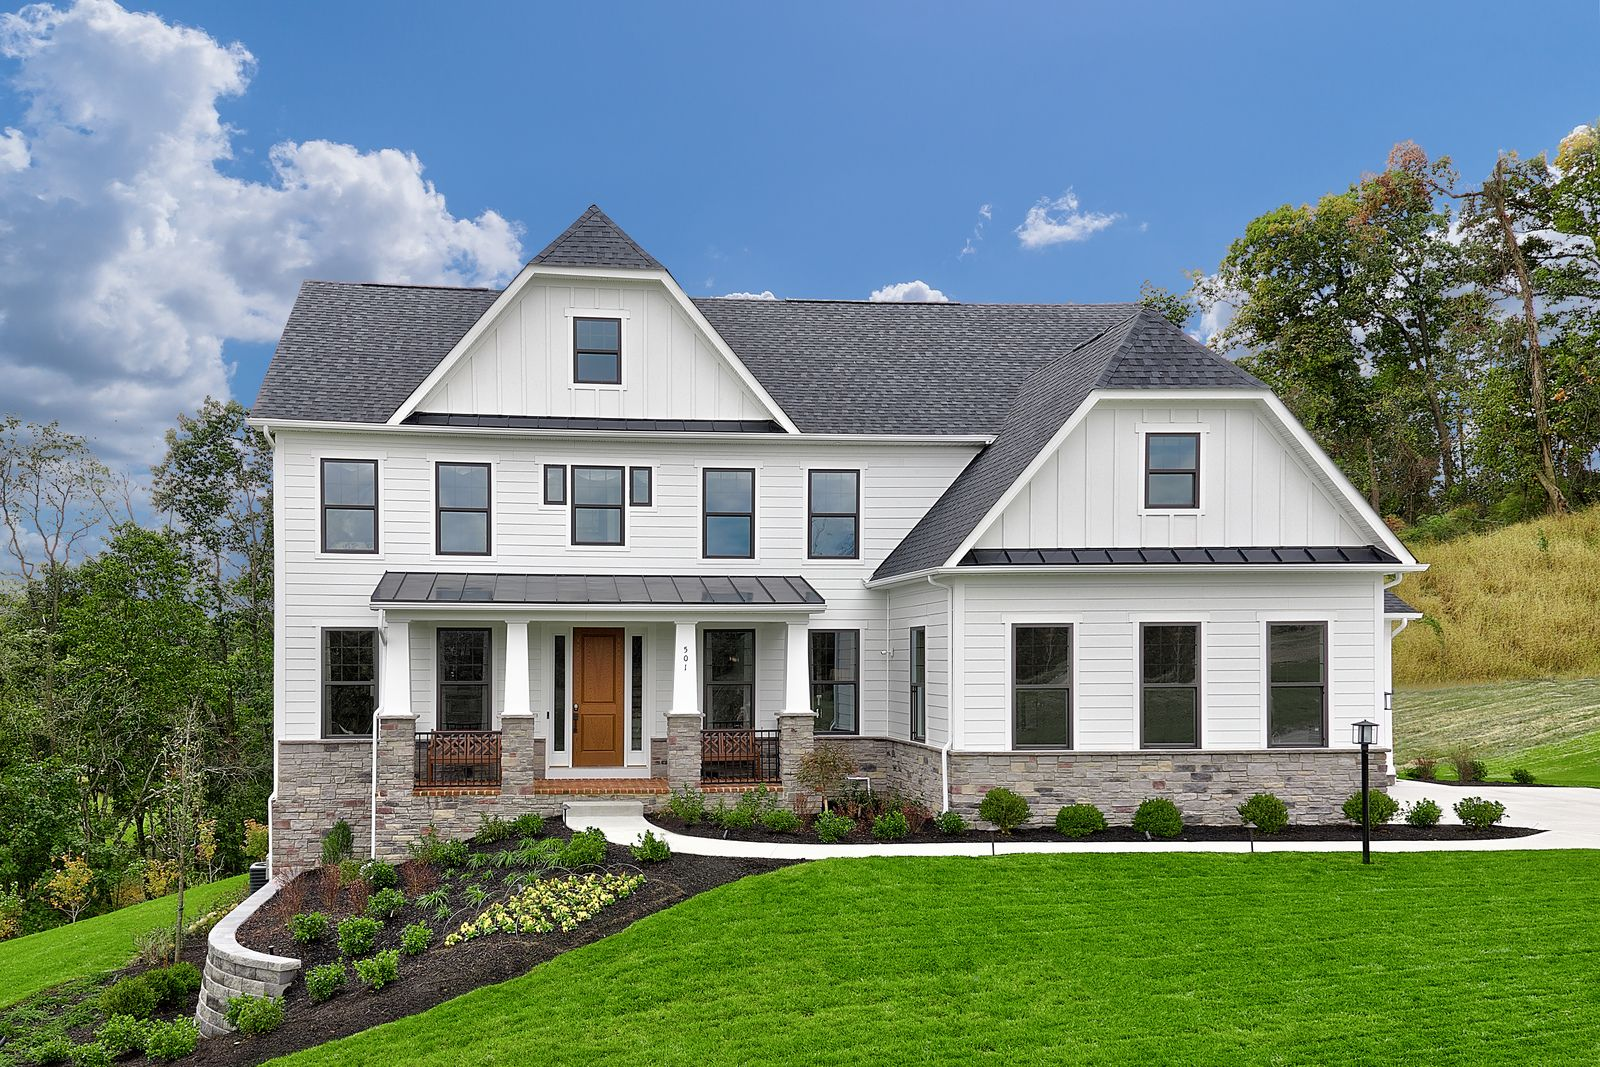 WELCOME HOME TO THE VILLAS OF ENGLISH FARMS:The space, style & luxury you expect and deserve. Homes are appointed w/ stately exteriors, 3-car garages, finished basements w/ full baths, fireplaces & more!Click here to schedule an appointment.